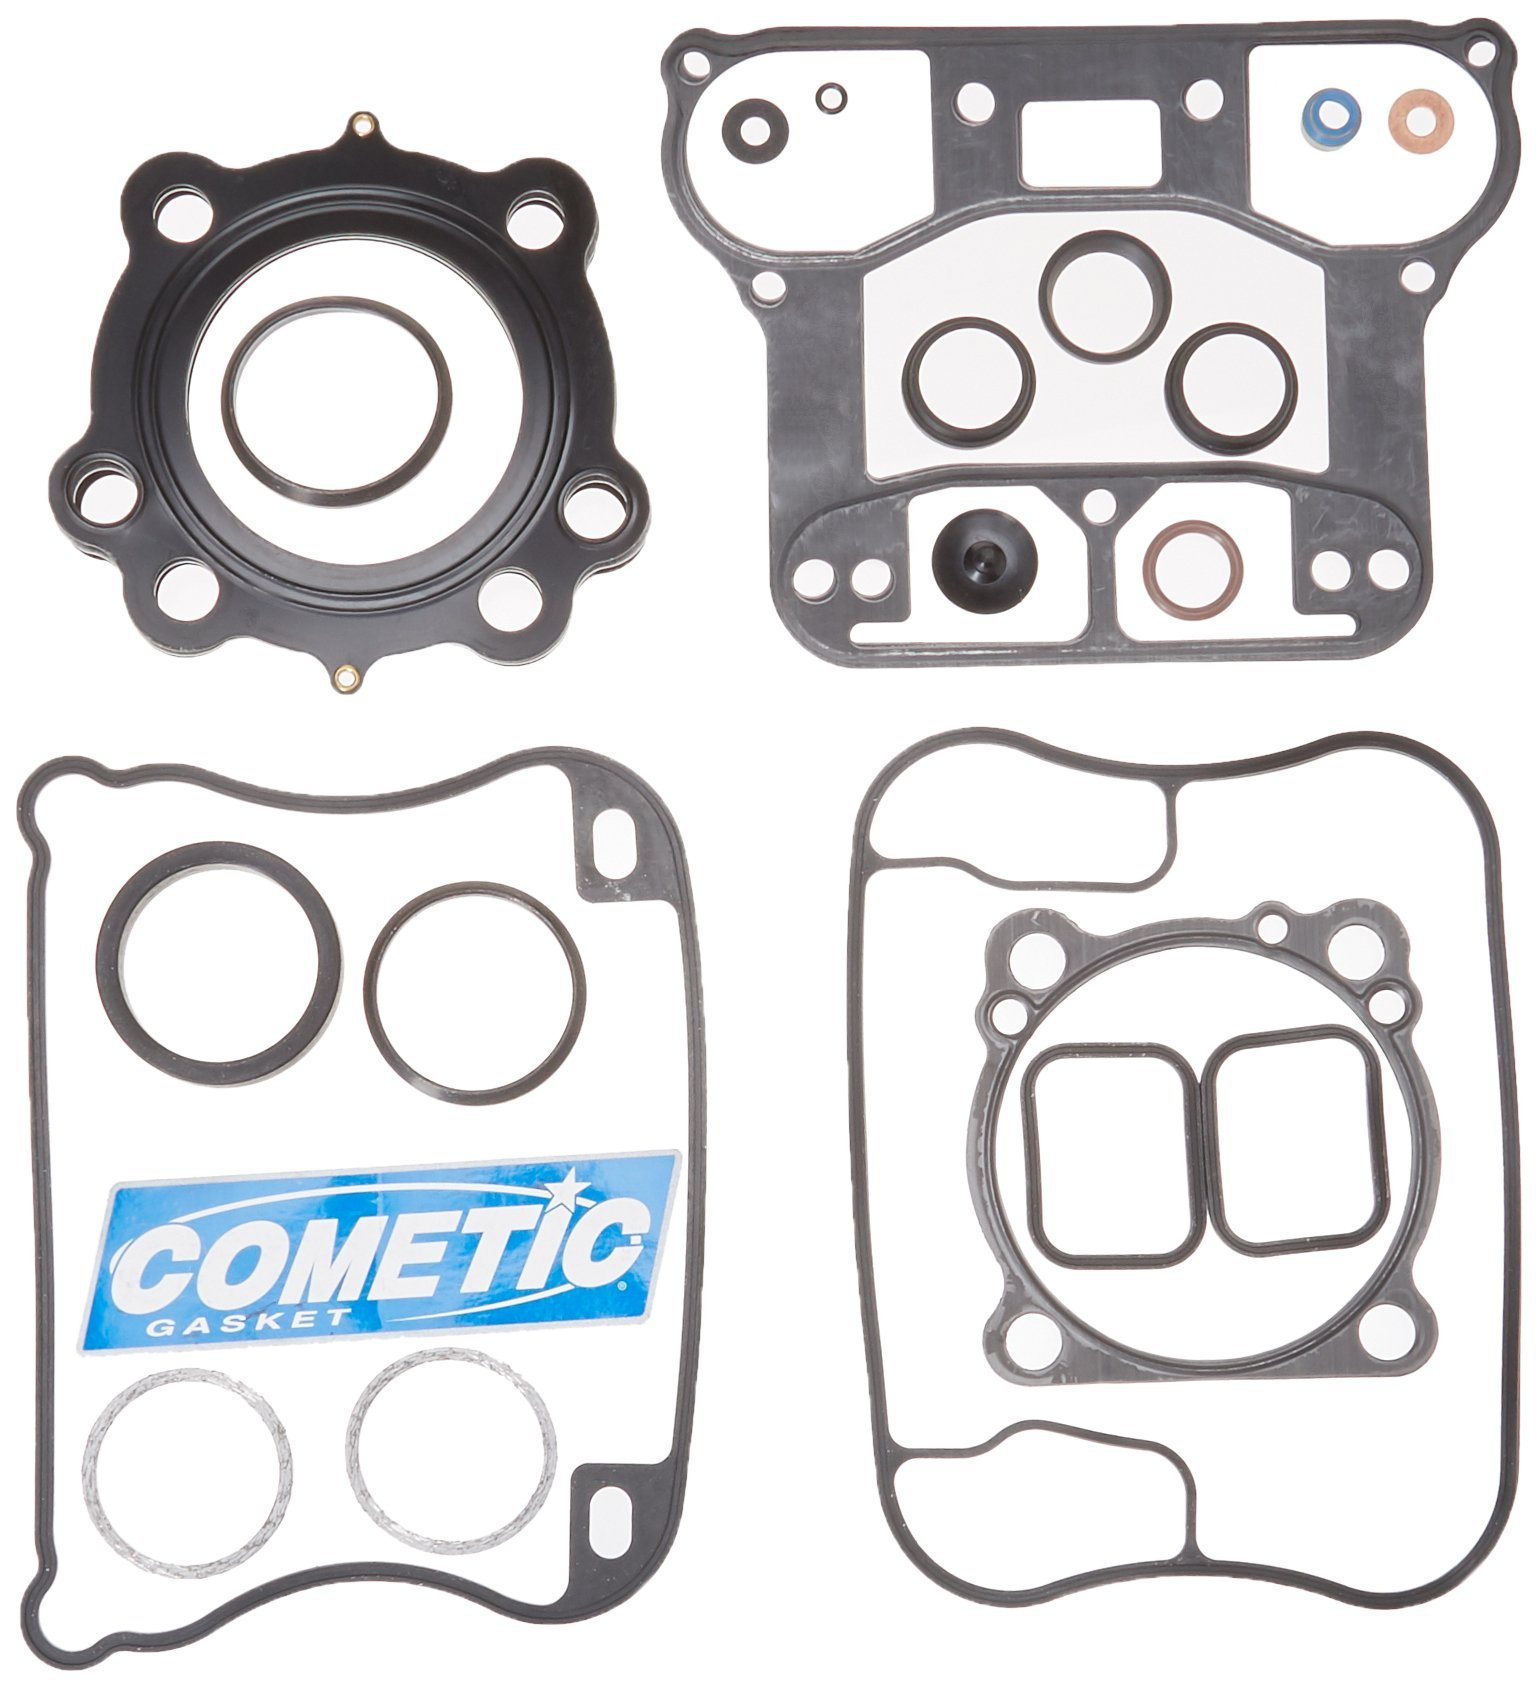 Cometic C9760 Top End Gasket Kit/Clutch Cover Gasket